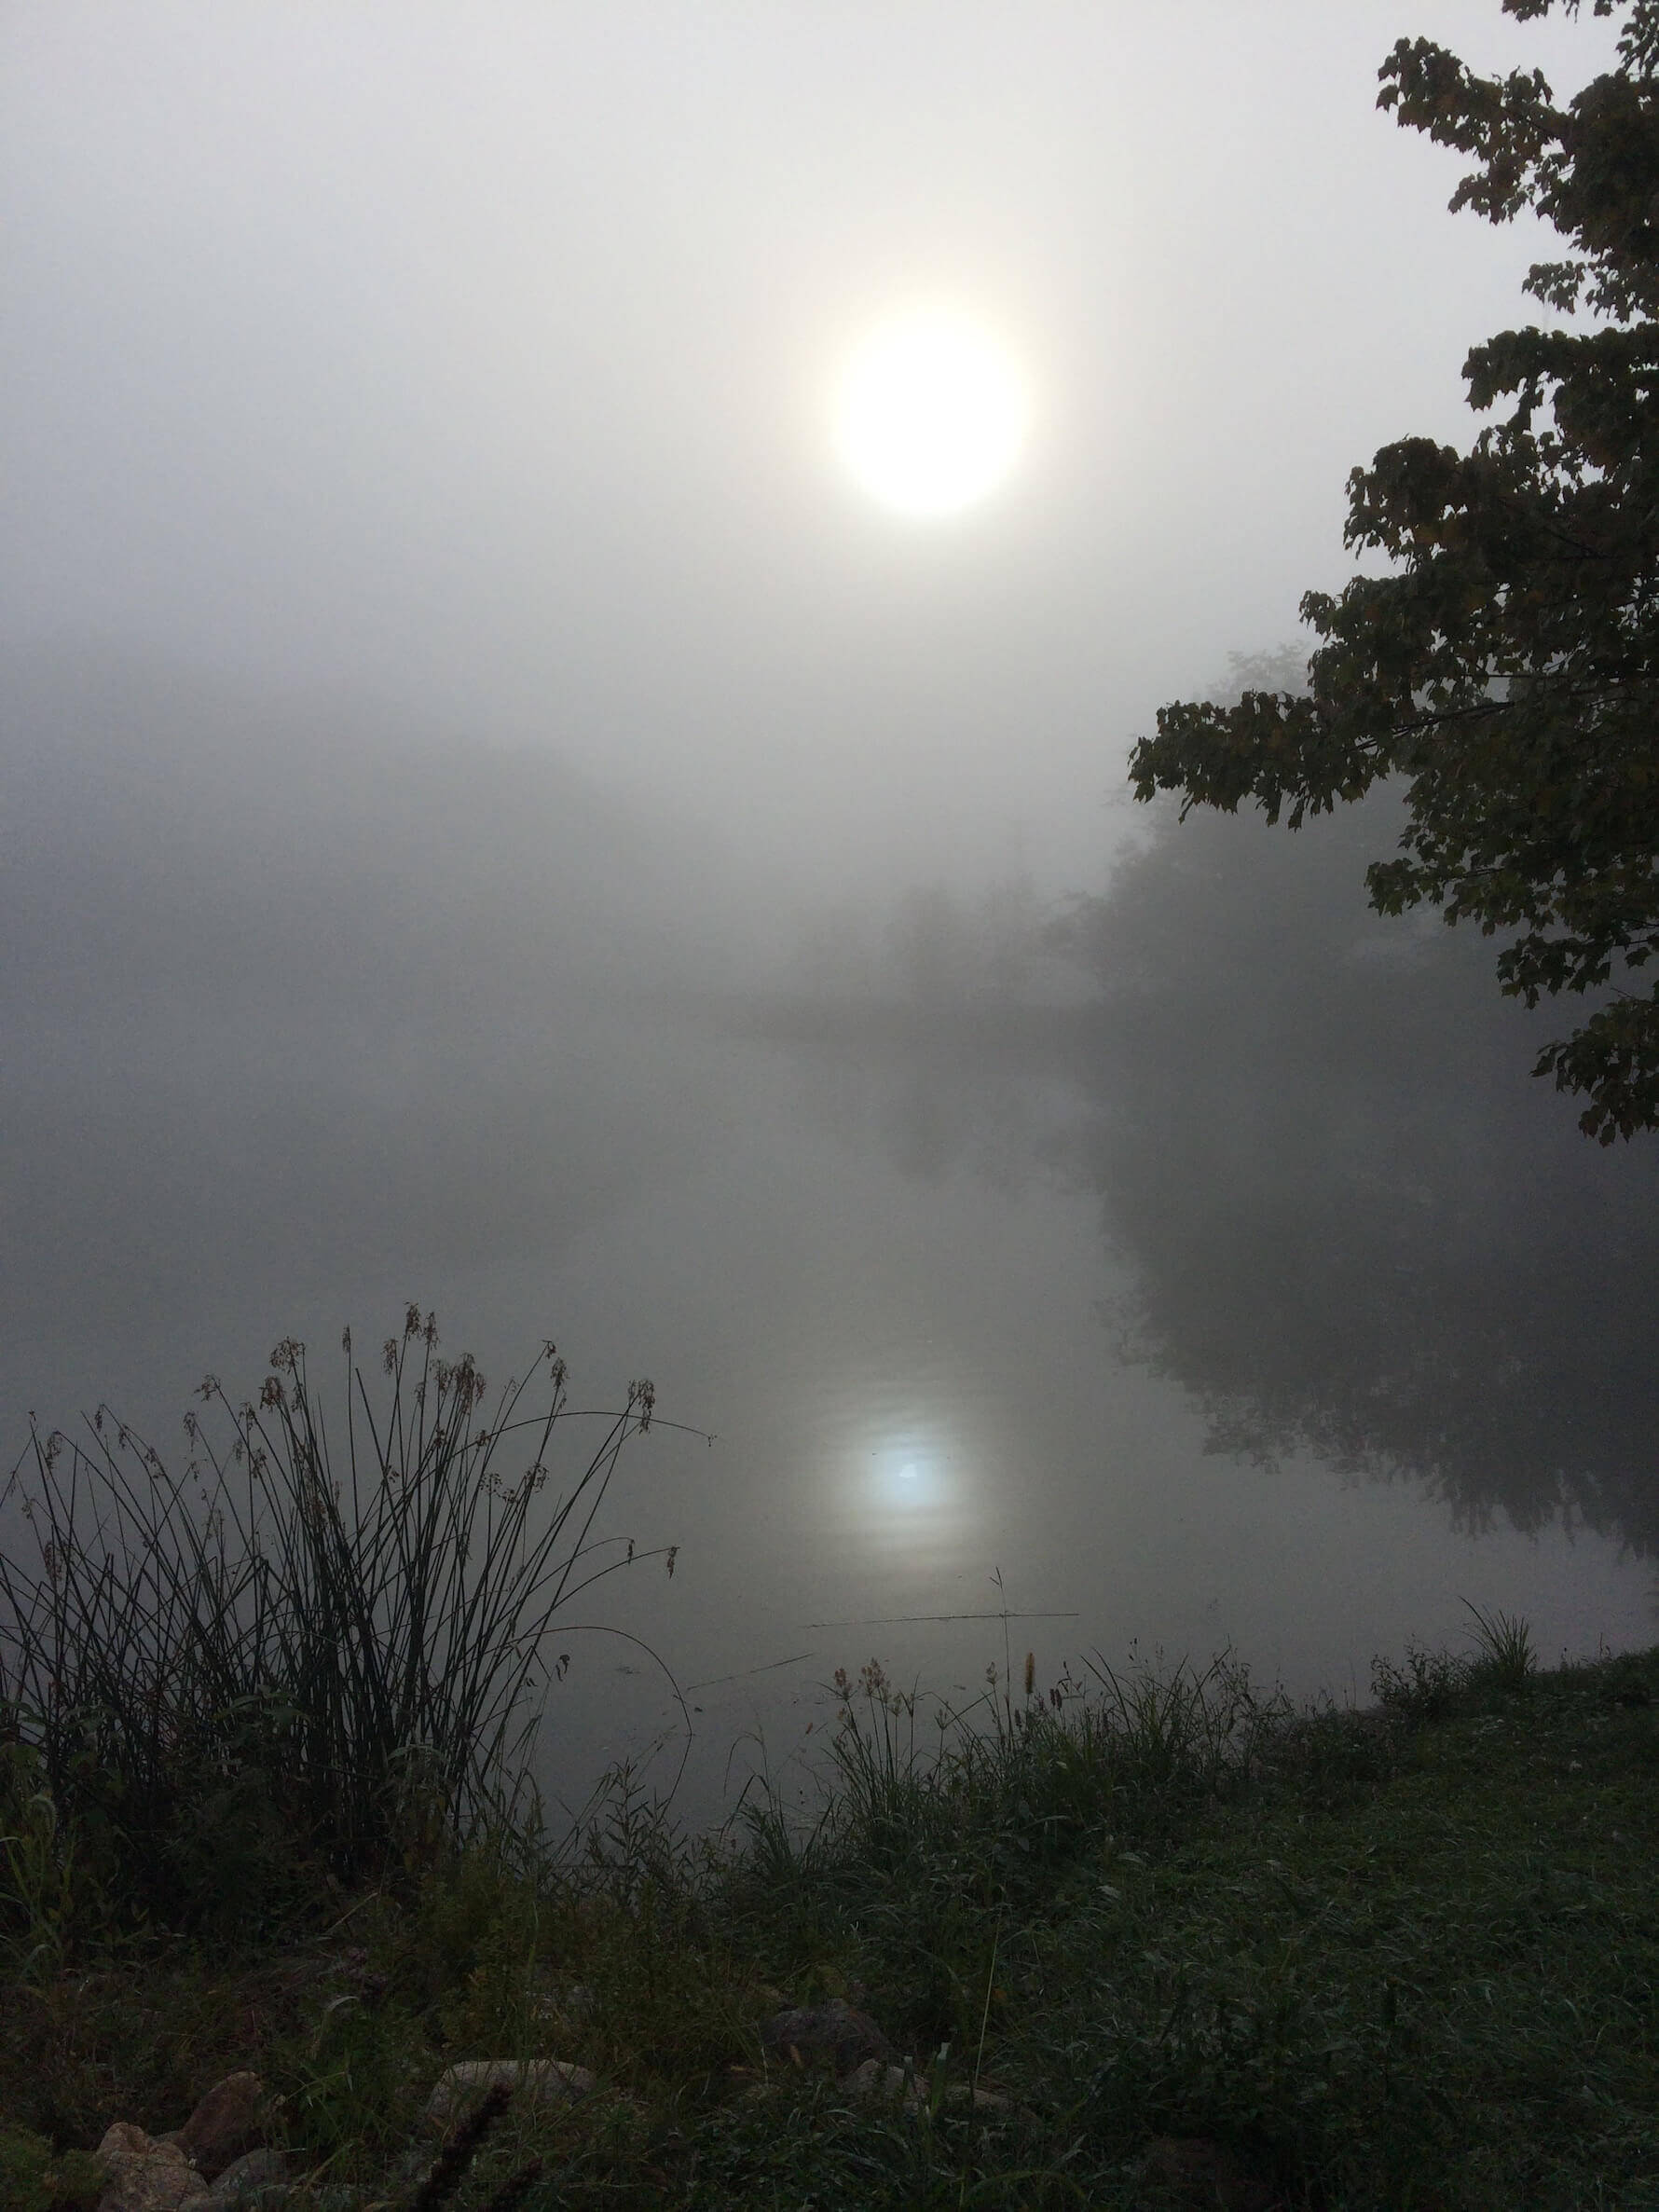 reflections and fog photos for sale